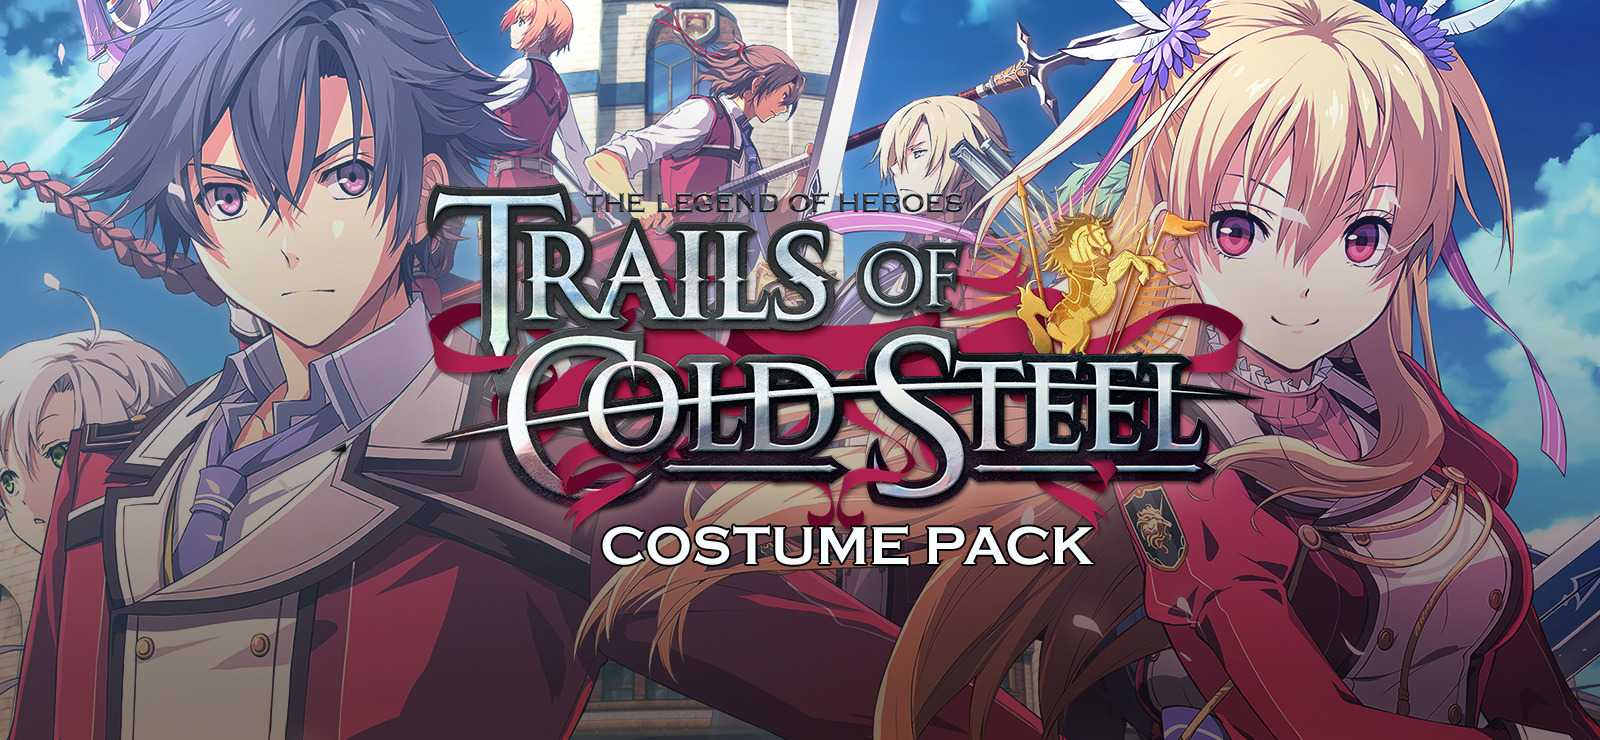 The Legend of Heroes: Trails of Cold Steel - Costume Pack